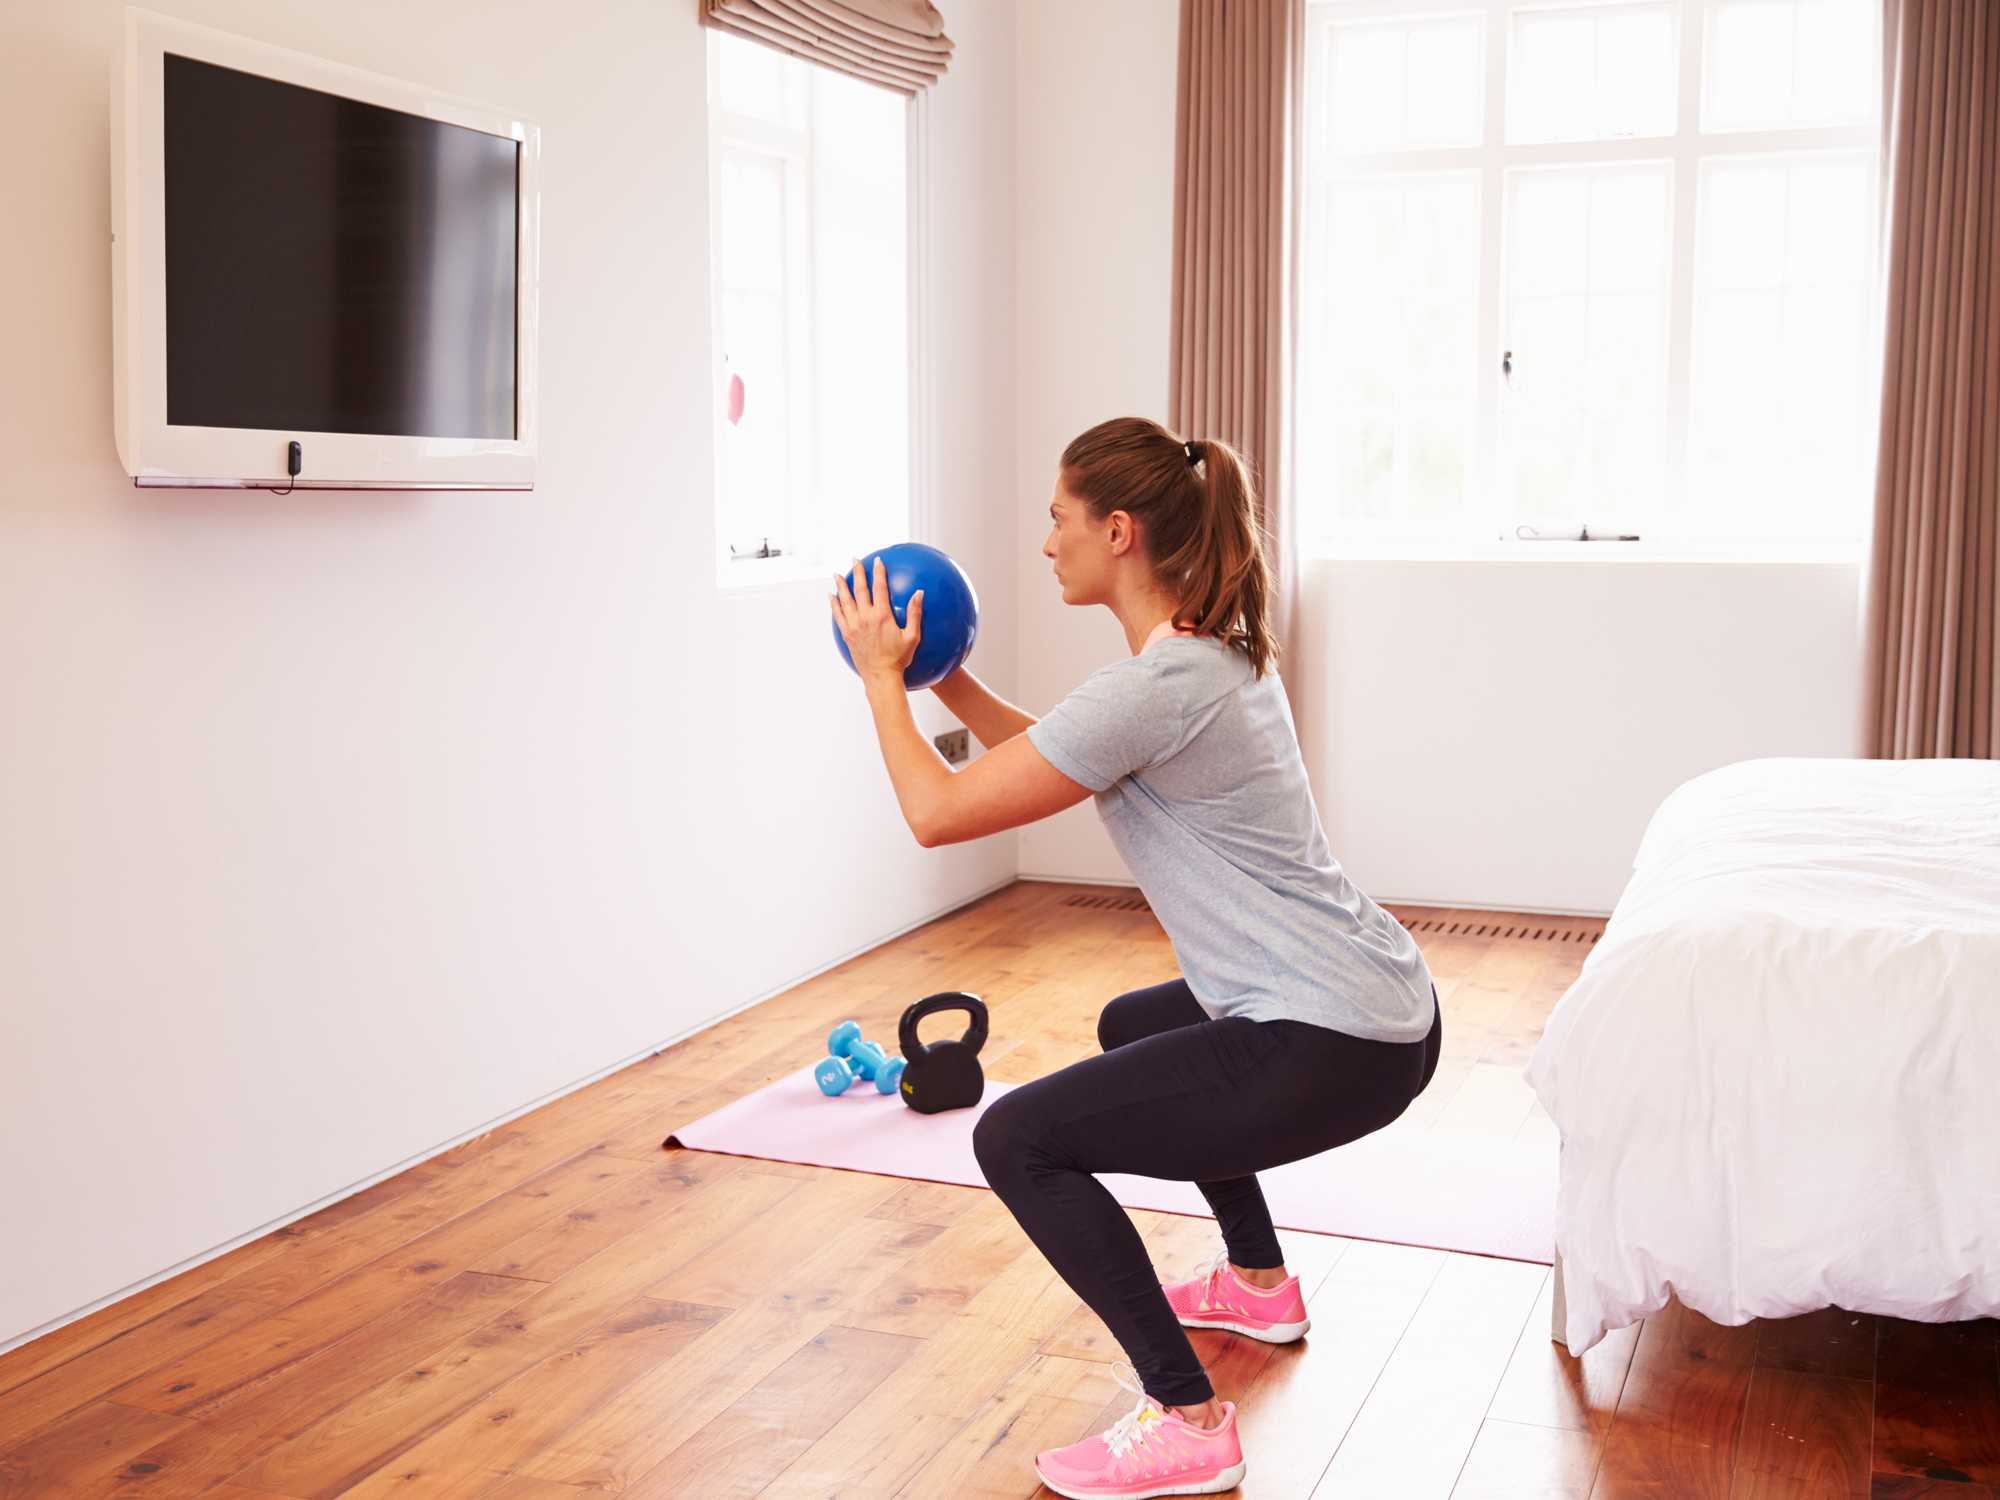 3+ ways to raise and tighten your tush